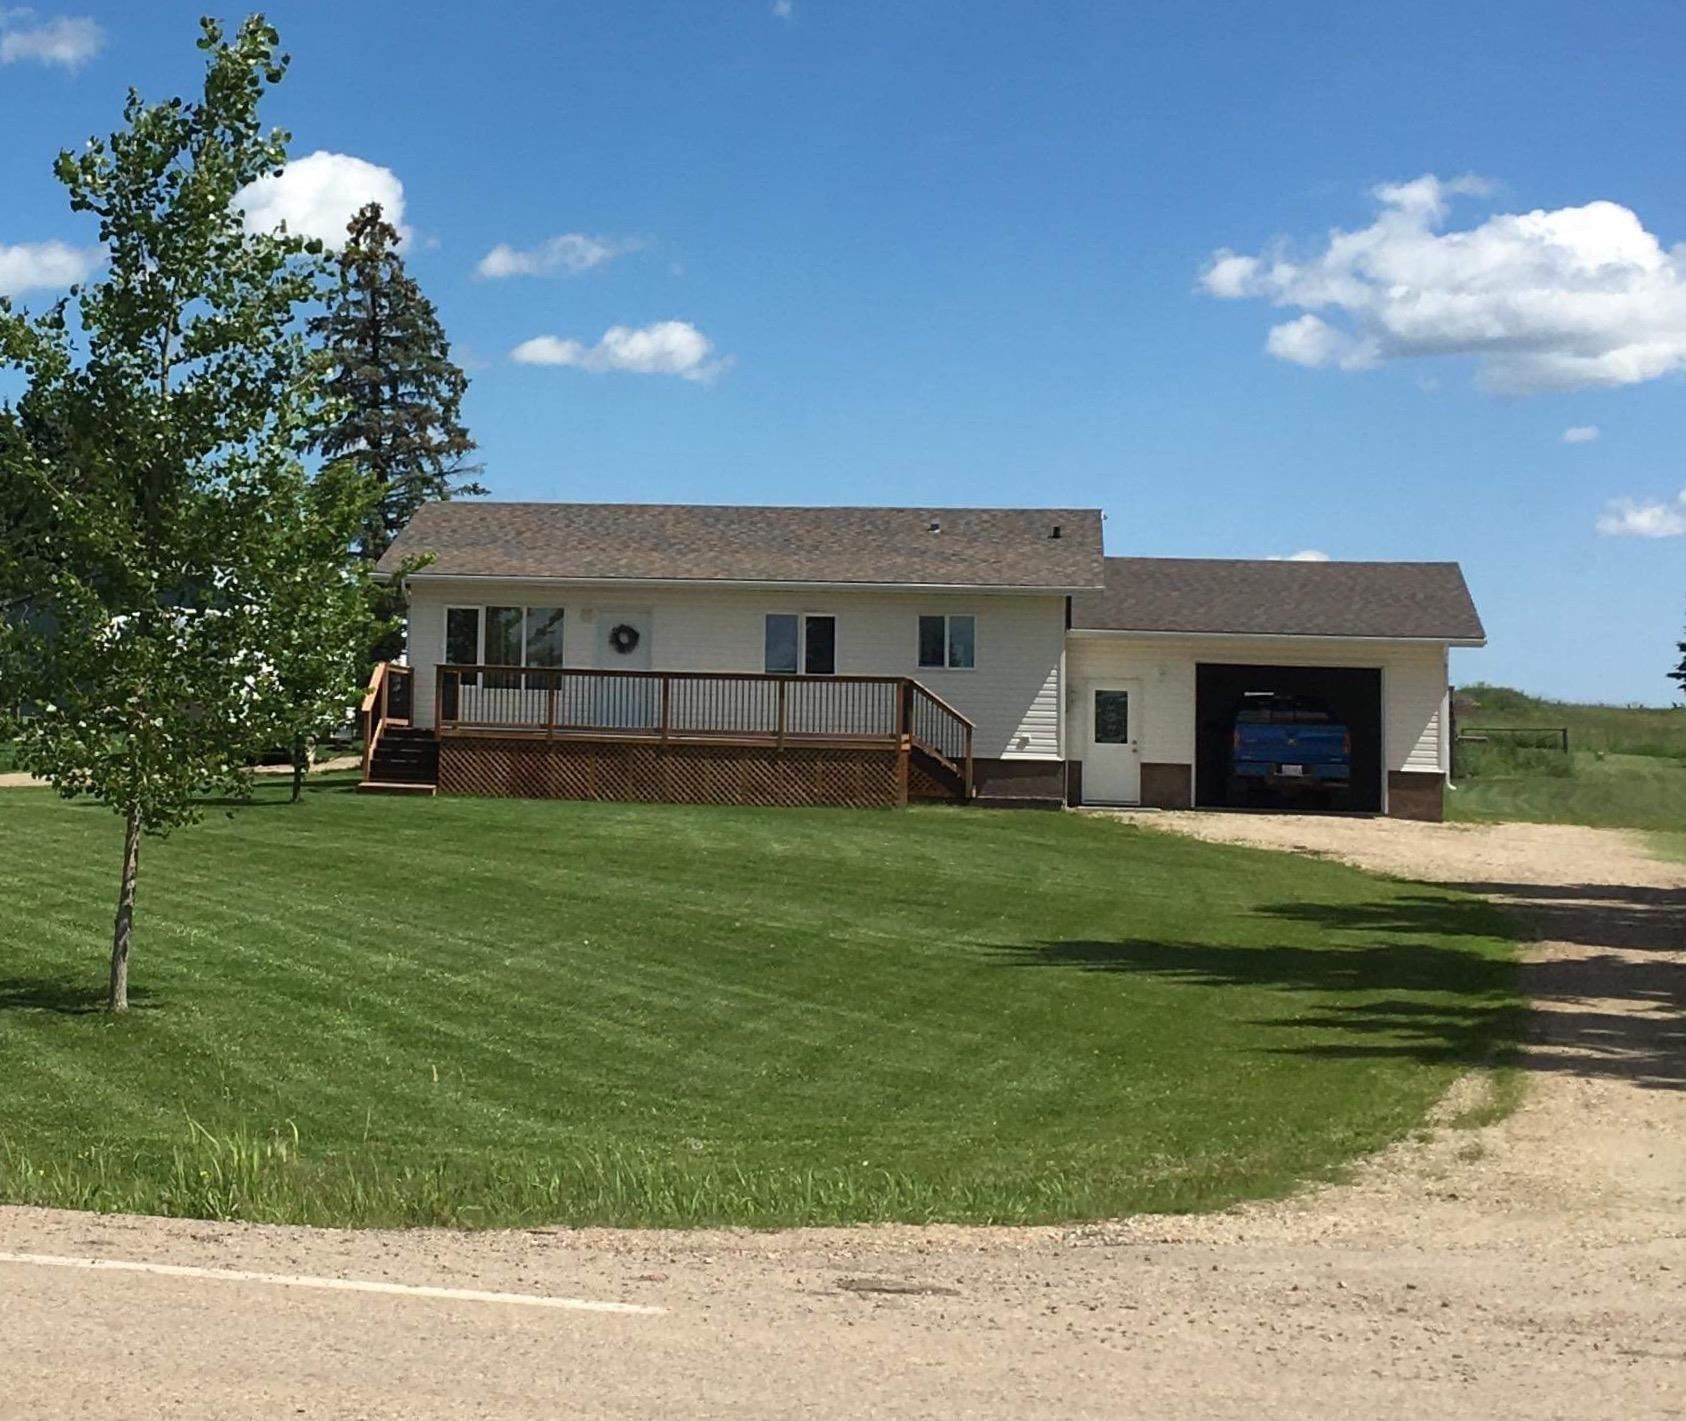 Main Photo: 30 48455 HWY 770: Rural Leduc County House for sale : MLS®# E4245498